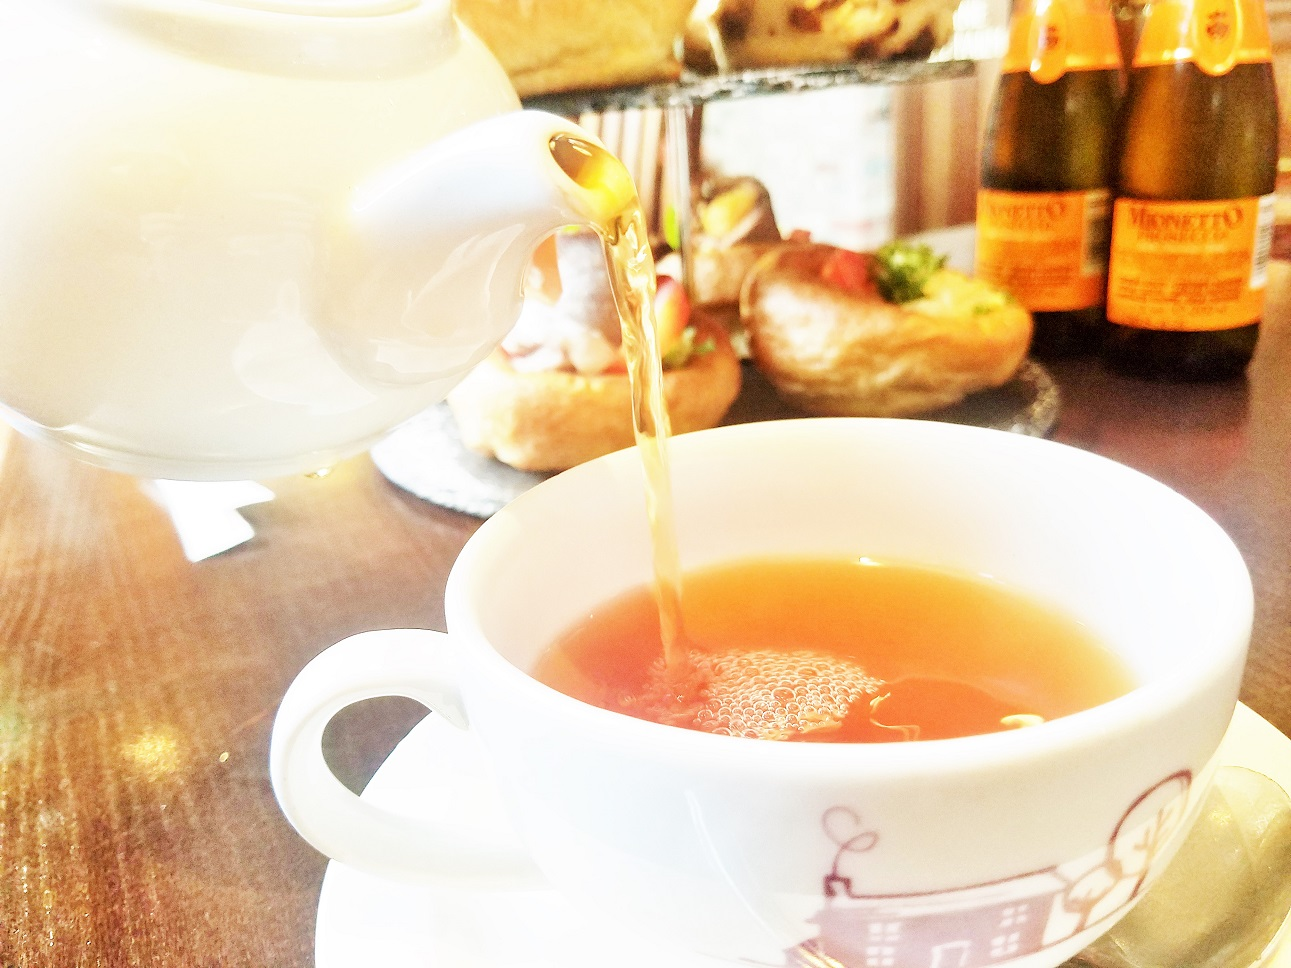 Yorkshire Afternoon Tea - pouring a cup of tea